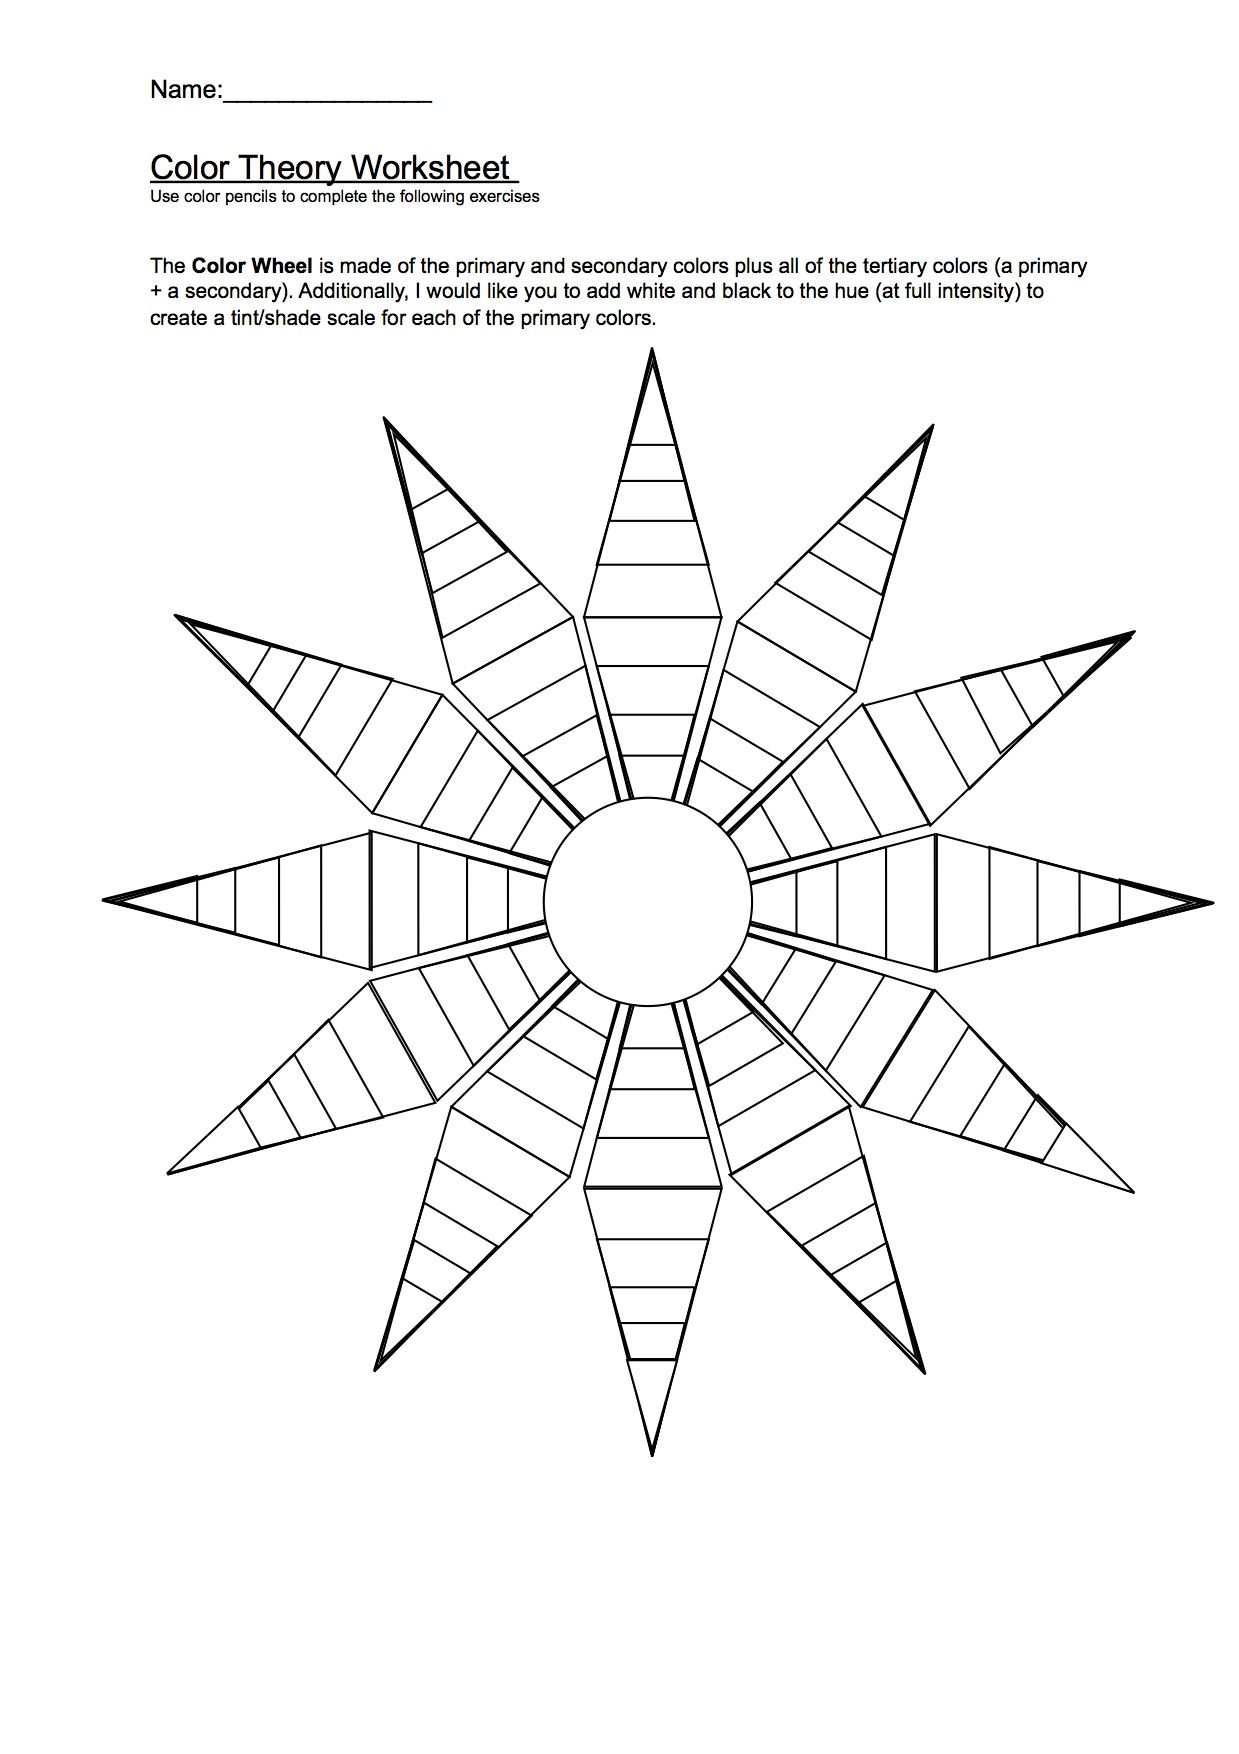 Color Wheel Worksheet Sketch Coloring Page